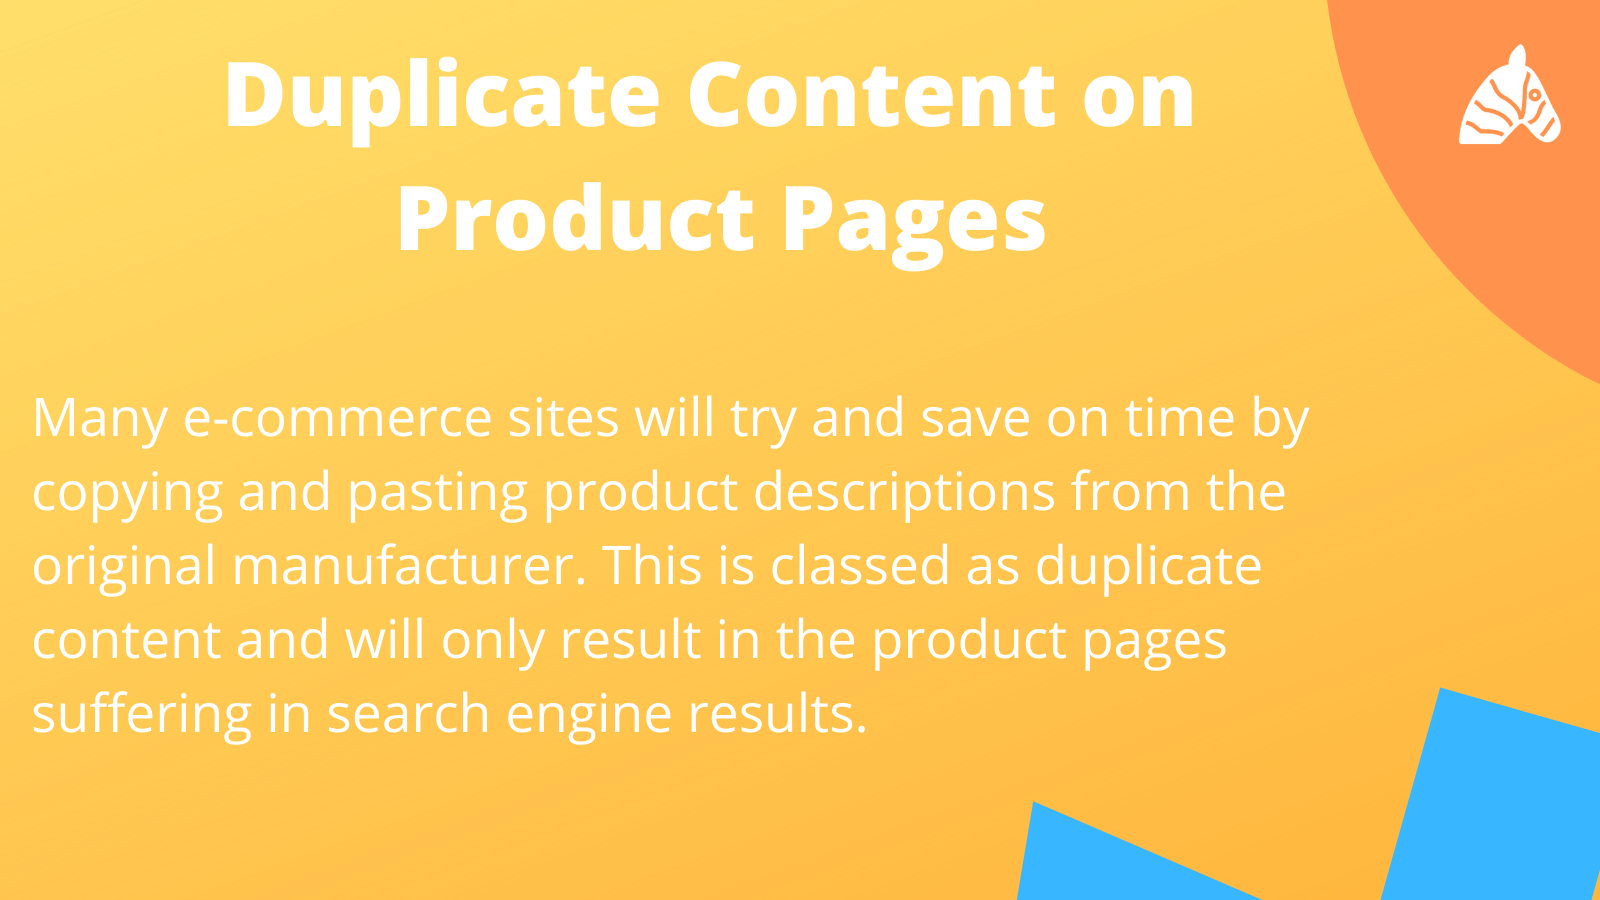 Handling duplicate content on product pages